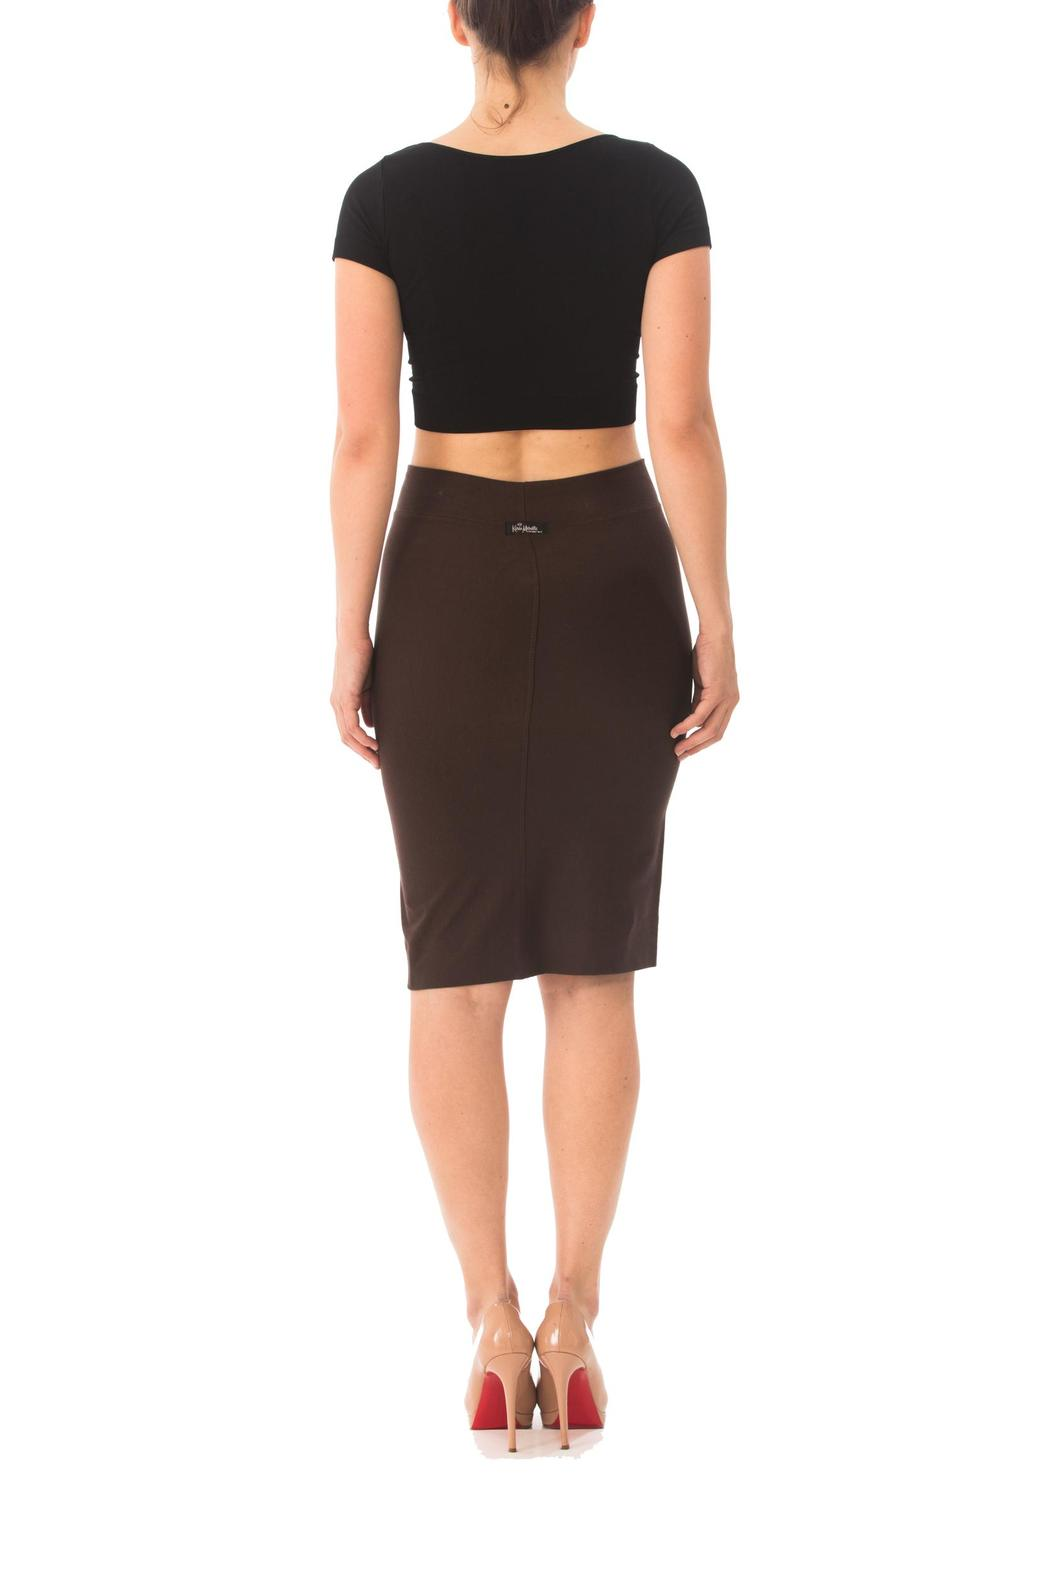 Karen Michelle Solid Fitted Pencil-Skirt from Los Angeles ...